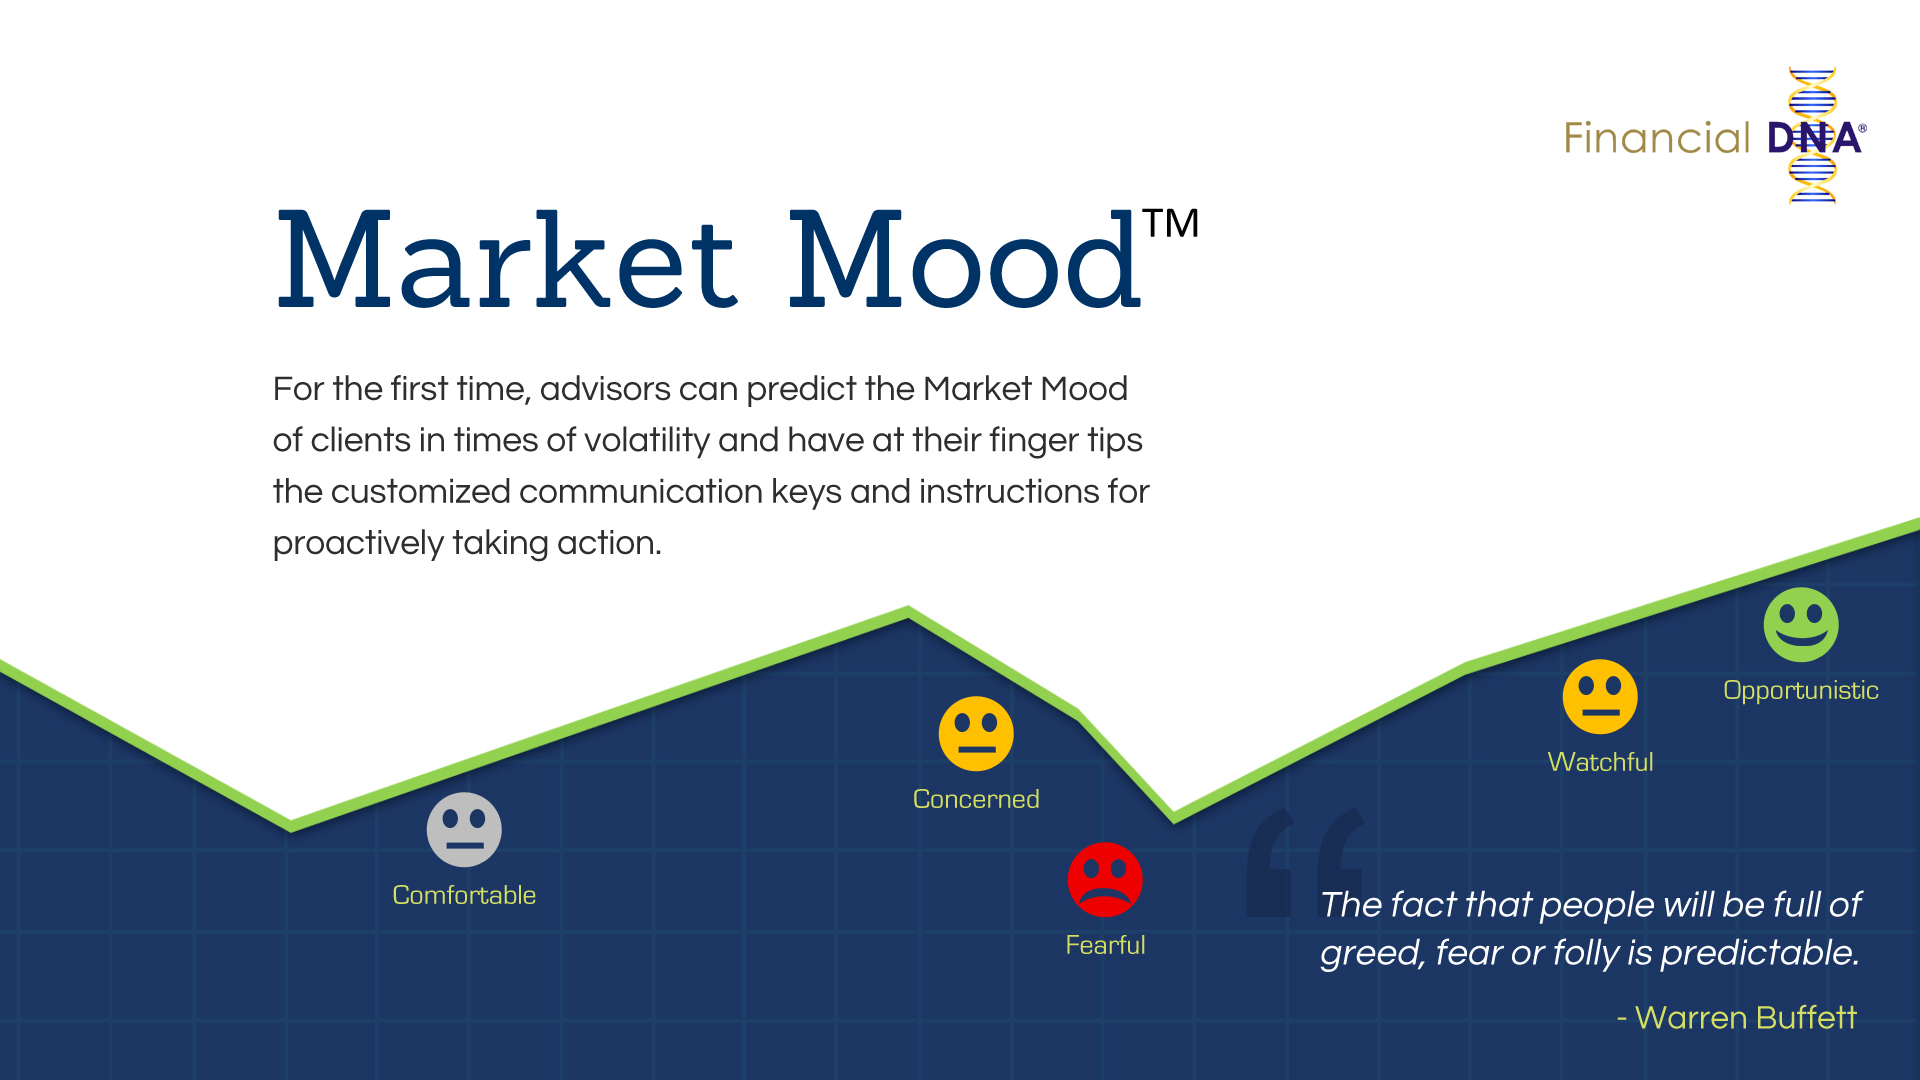 Financial DNA Market Mood image displaying investor emotions.